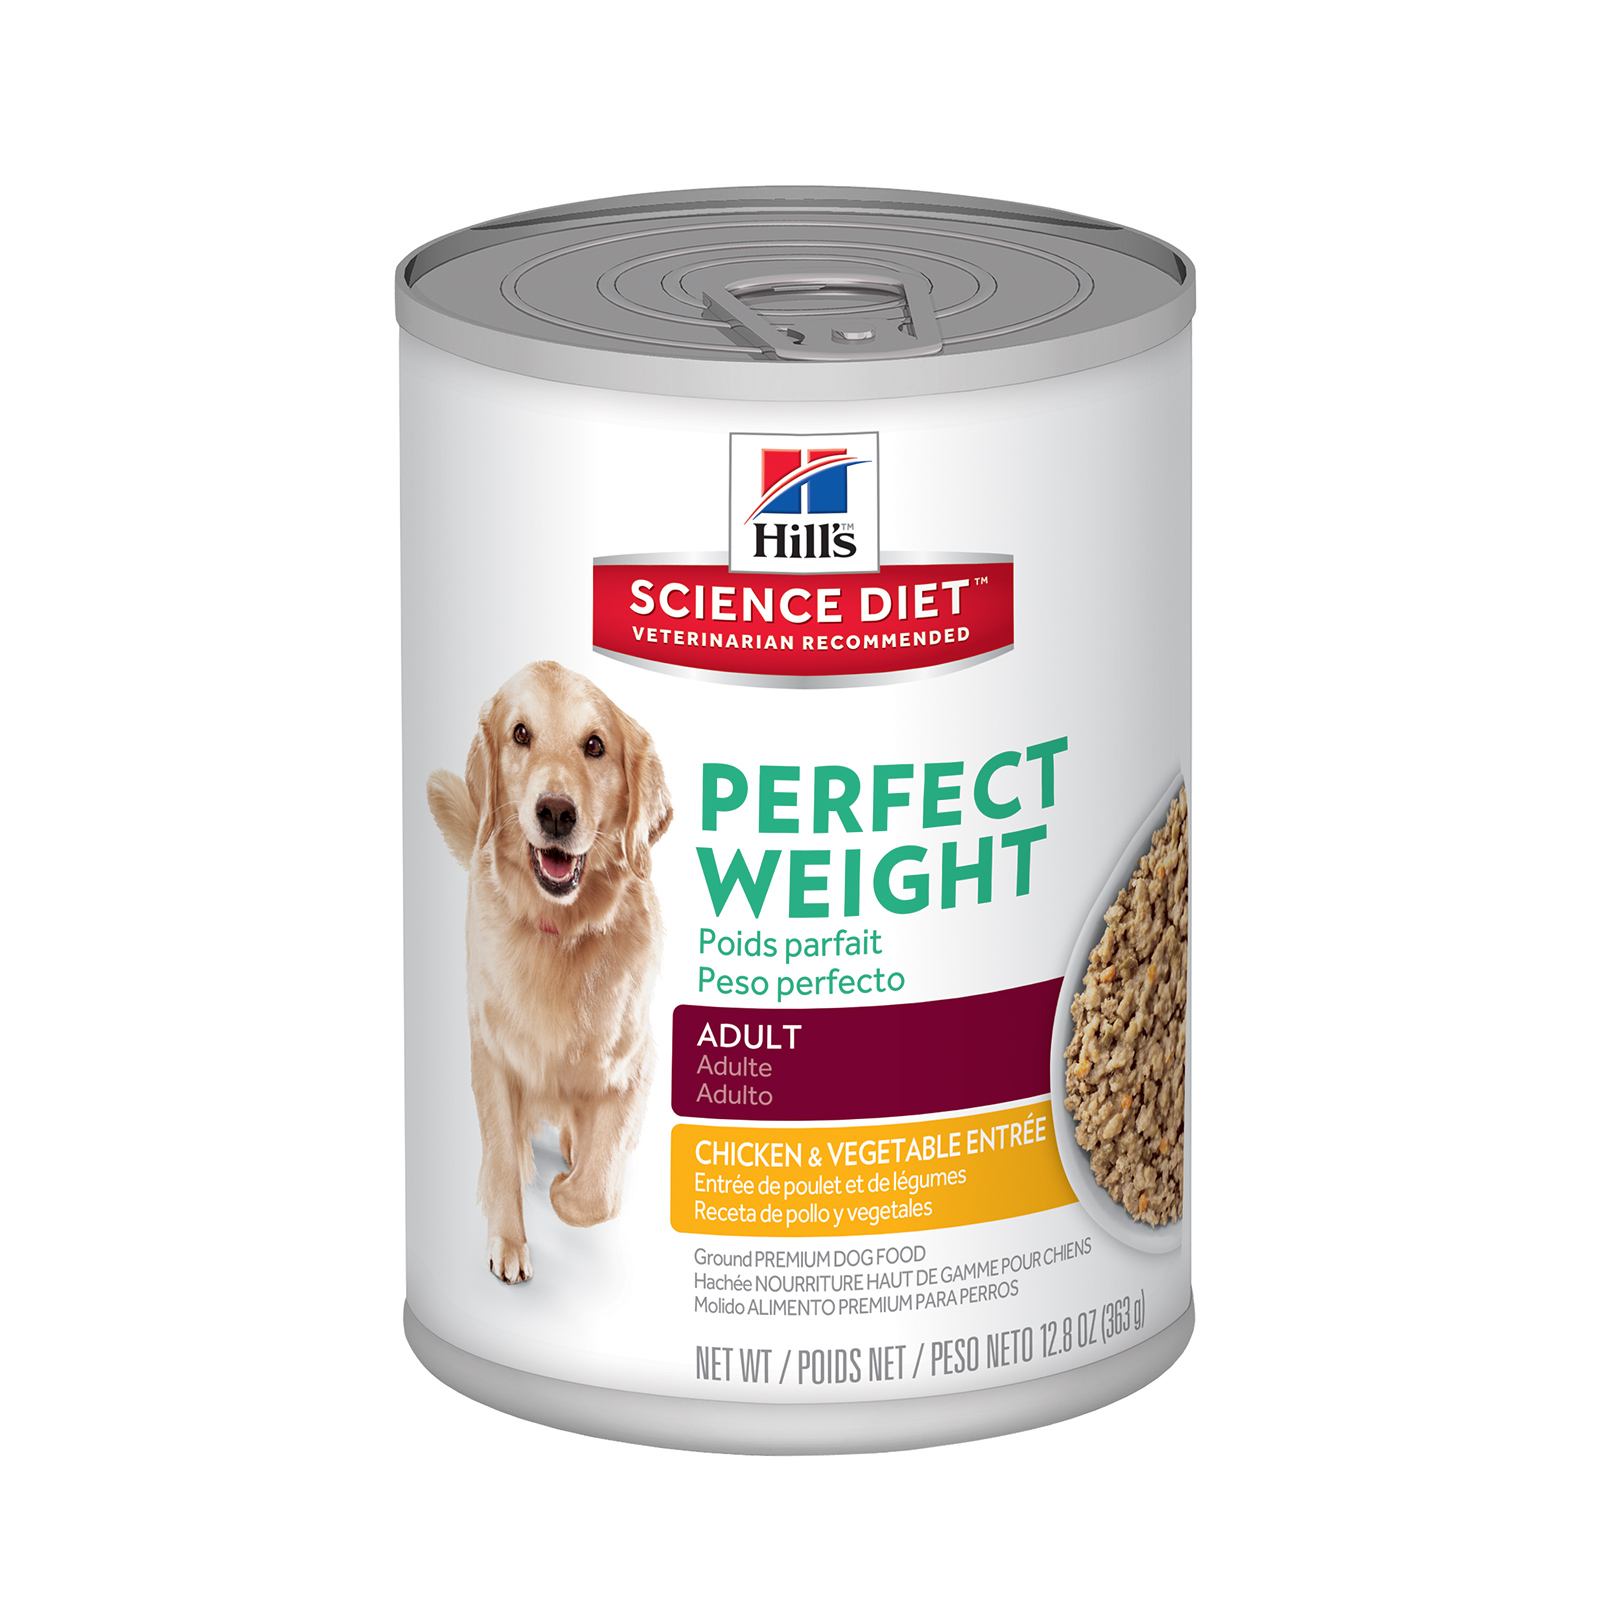 diet science hills dog food weight perfect adult wet canned cans dogs 2975